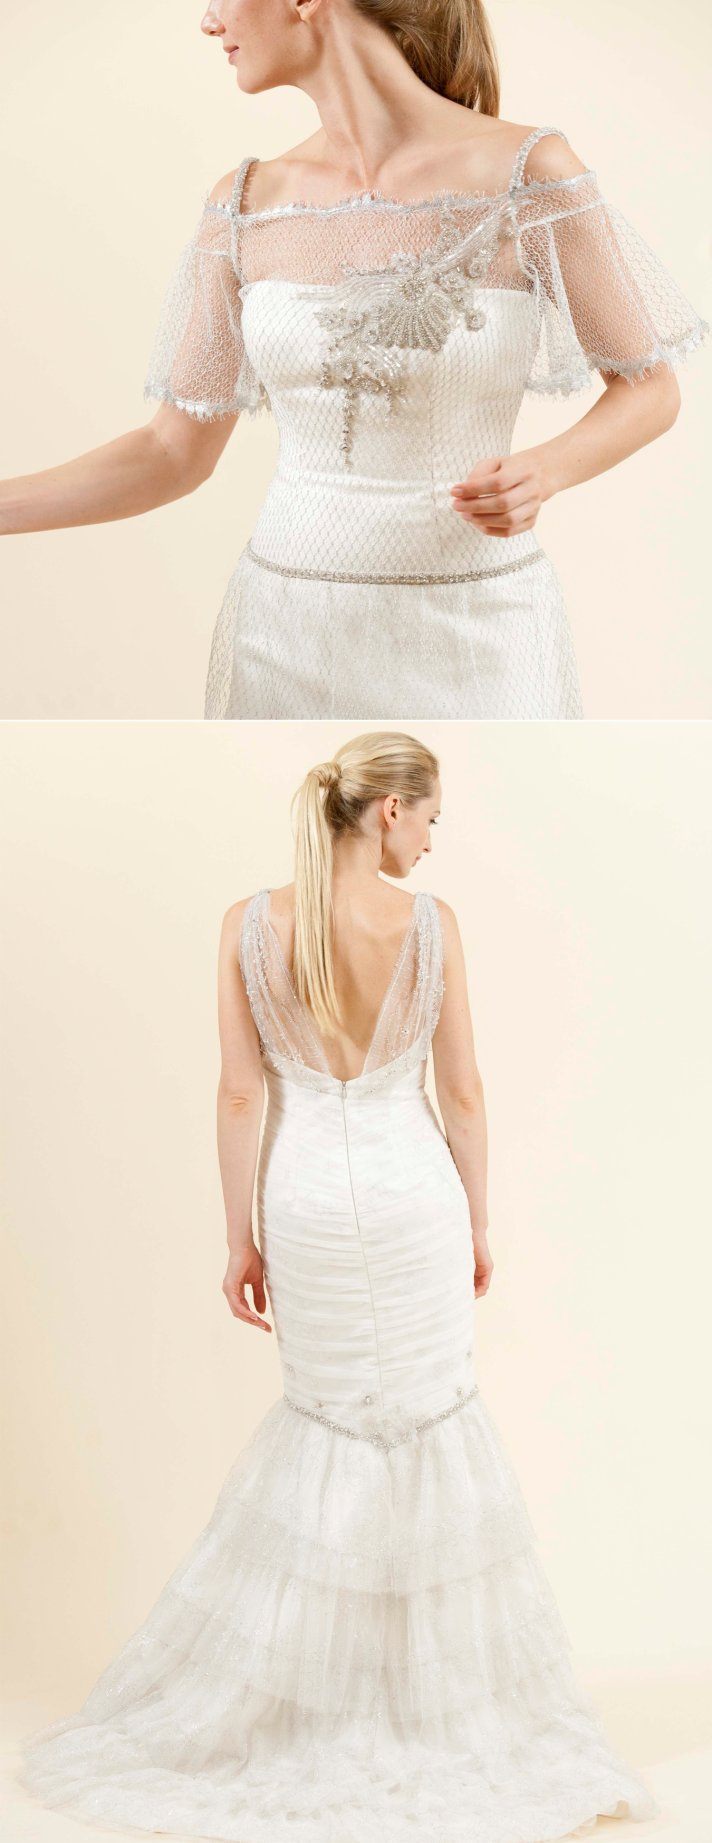 coco vochi wedding dress 2012 mermaid bridal gown beaded